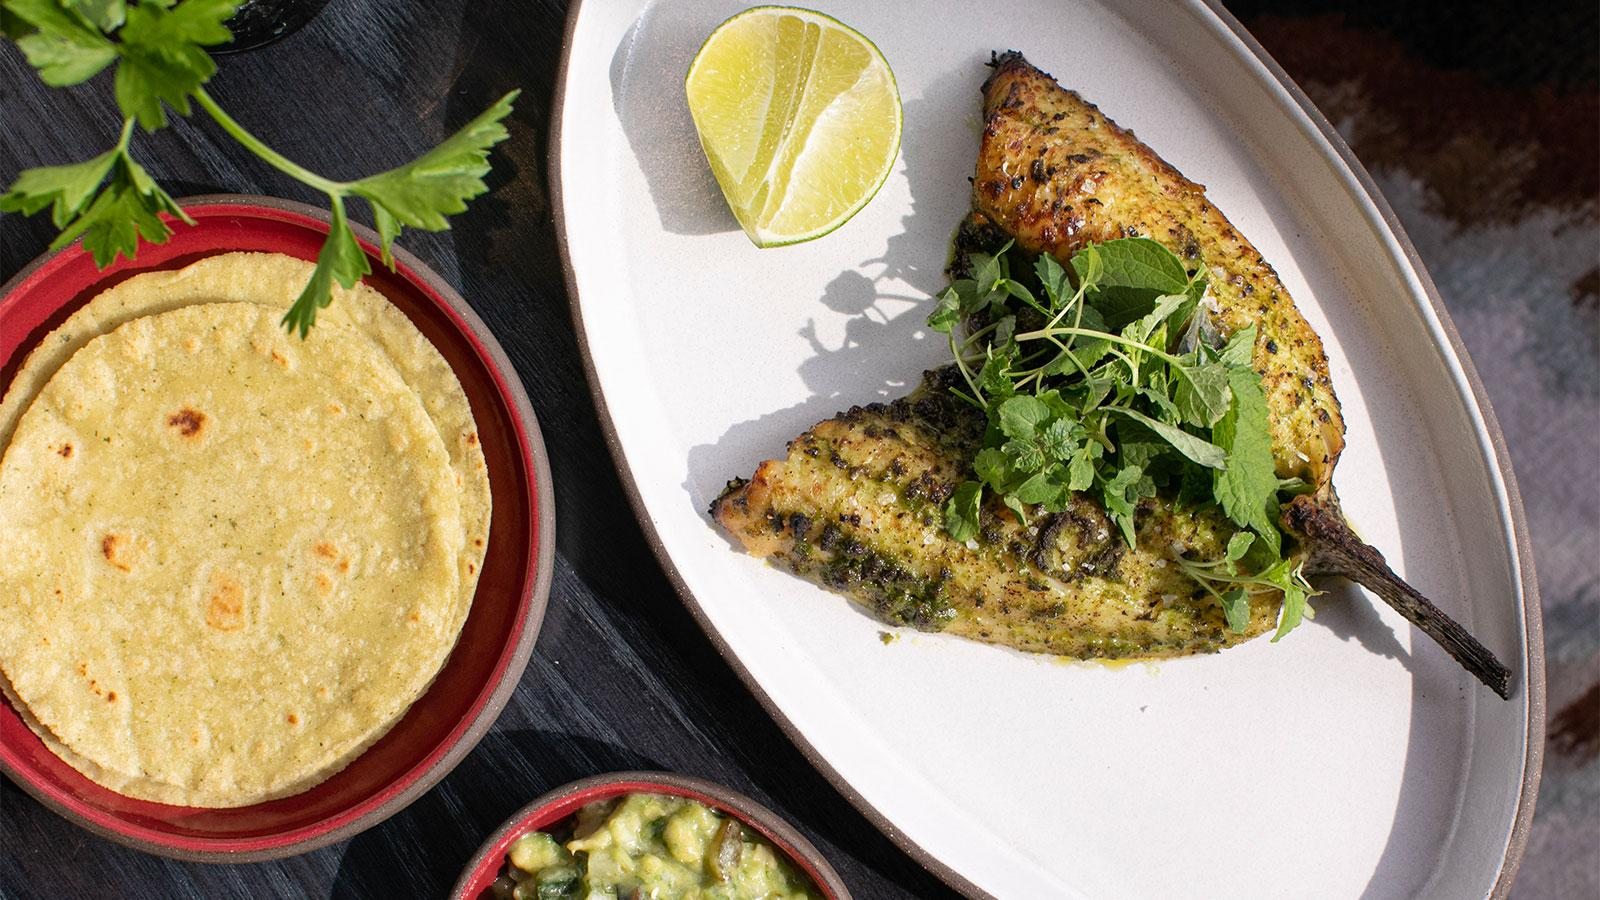 Black bass with poblano, salsa verde and fresh tortillas